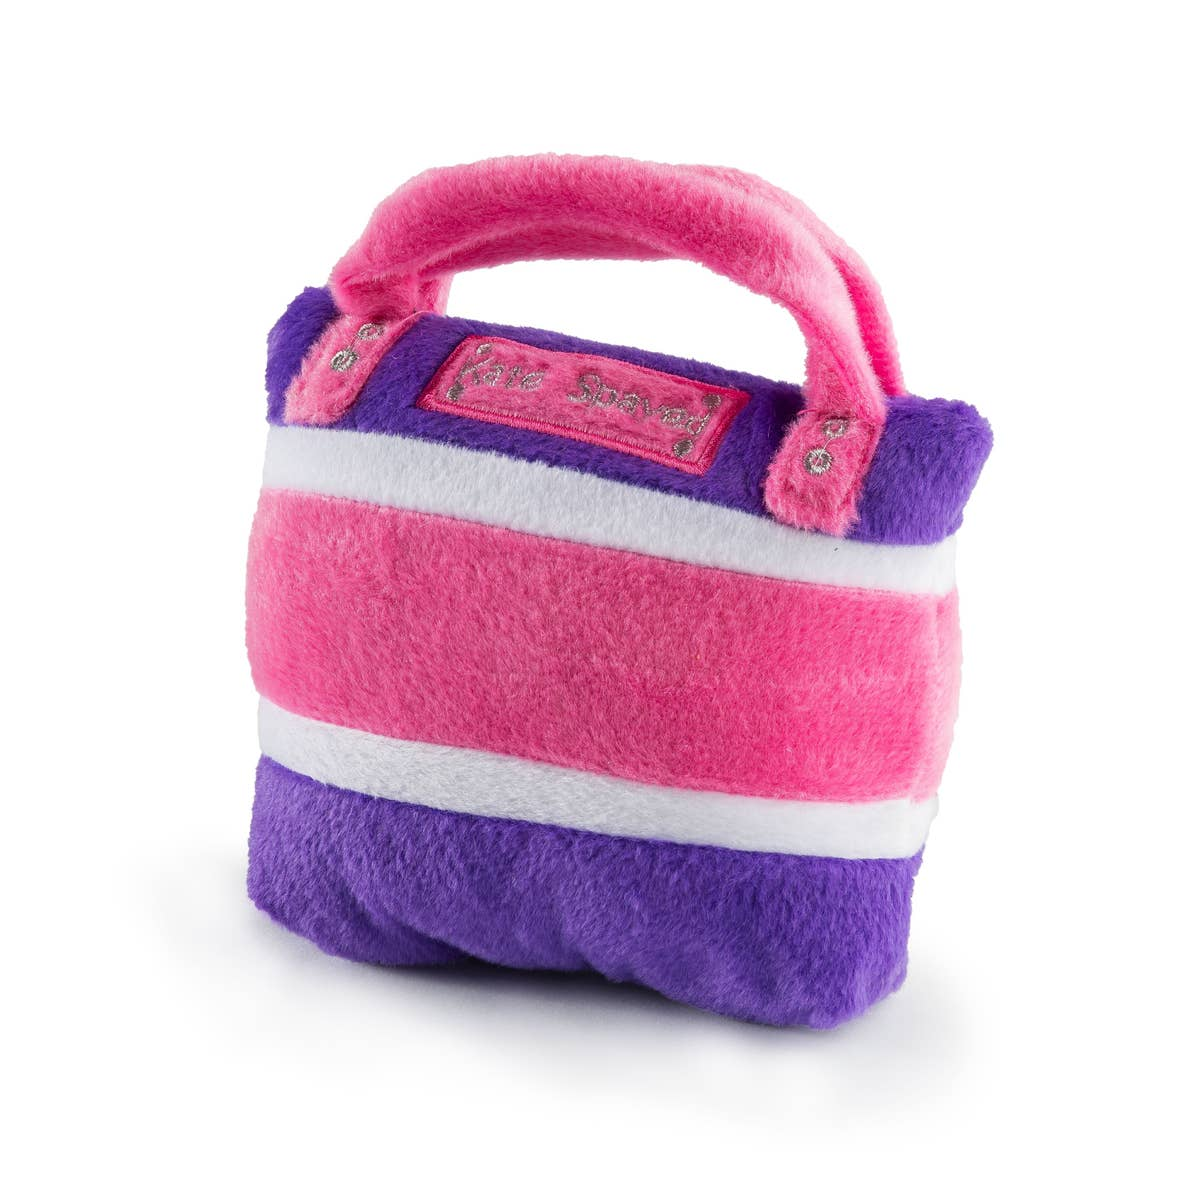 Kate Spayed Bag Dog Toy